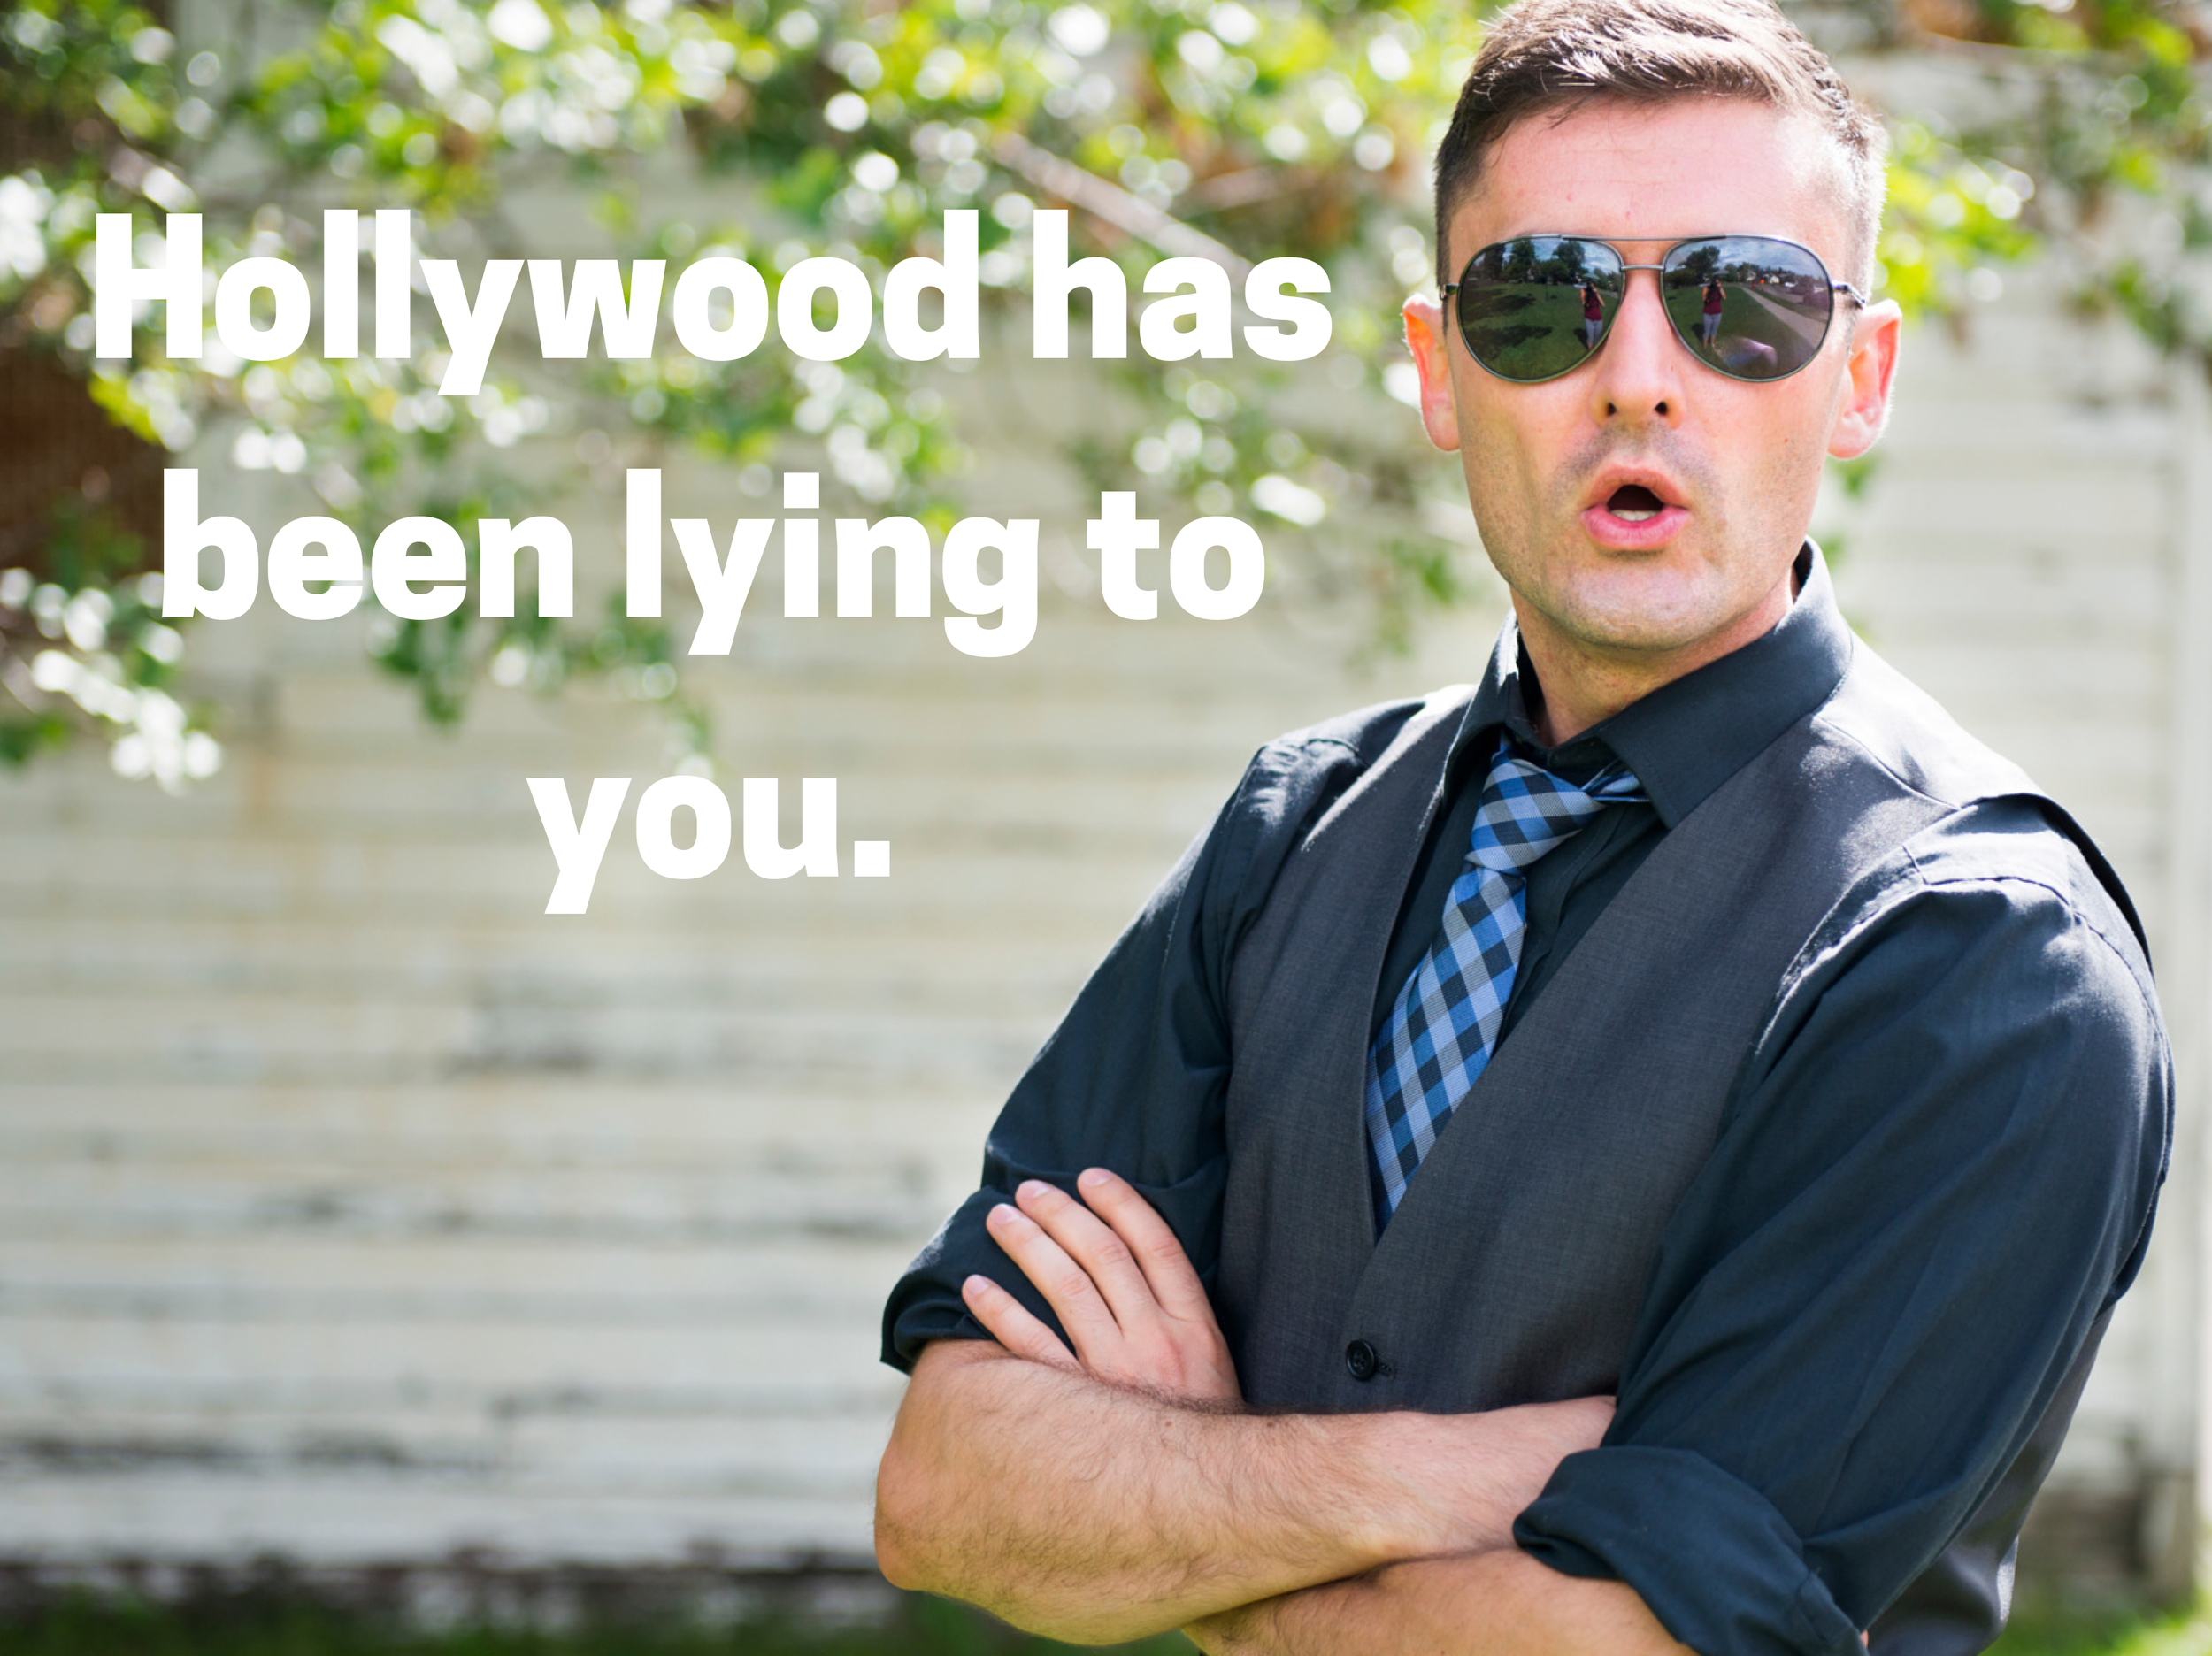 Hollywood's been lying to you